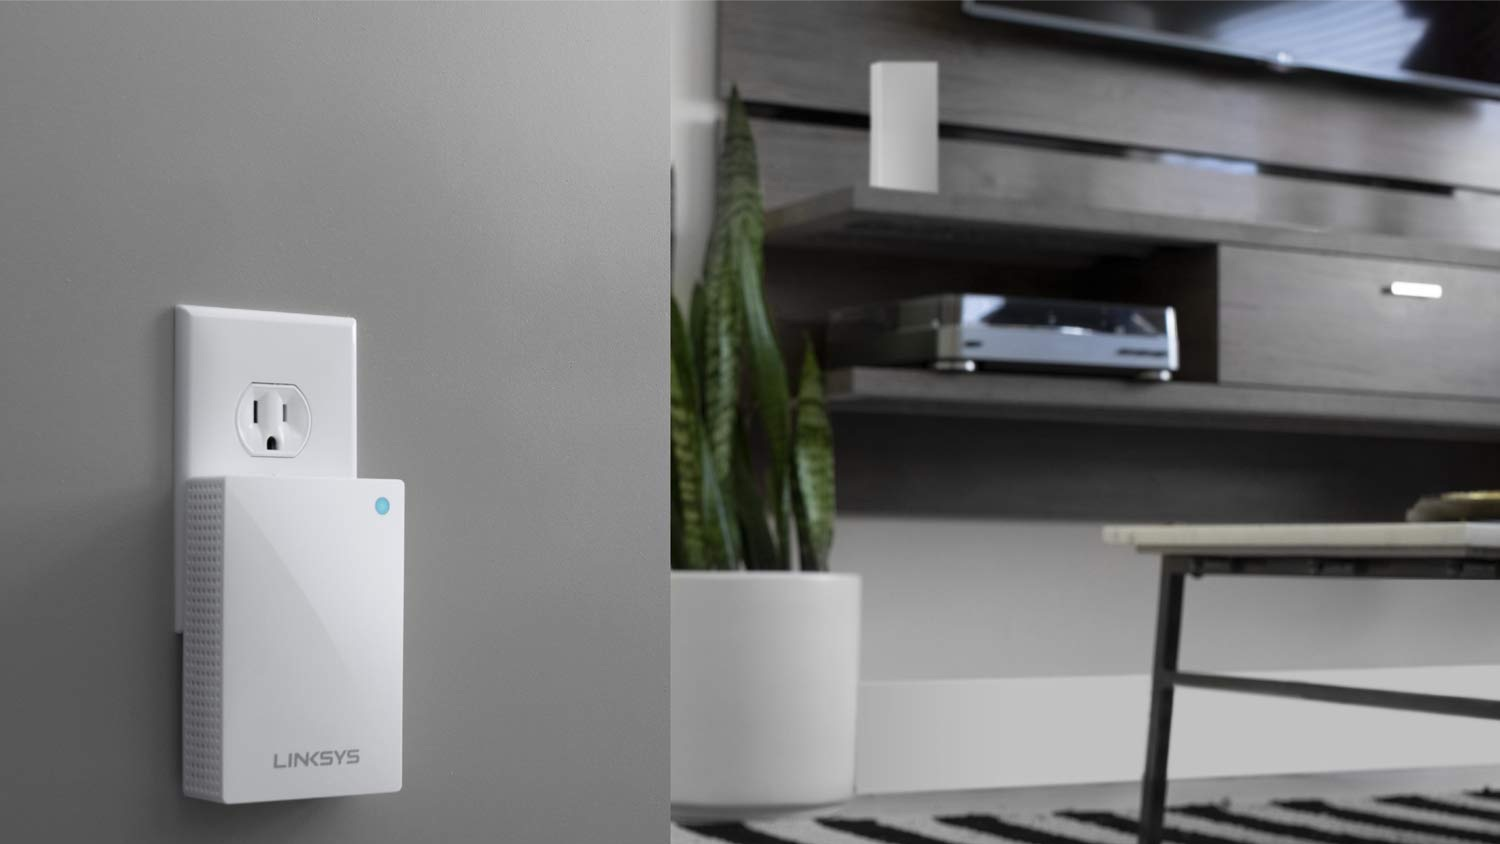 Linksys Expands Velop Mesh Wi-Fi System with Wall Plug-in Nodes, Apple's AirPort Replacement